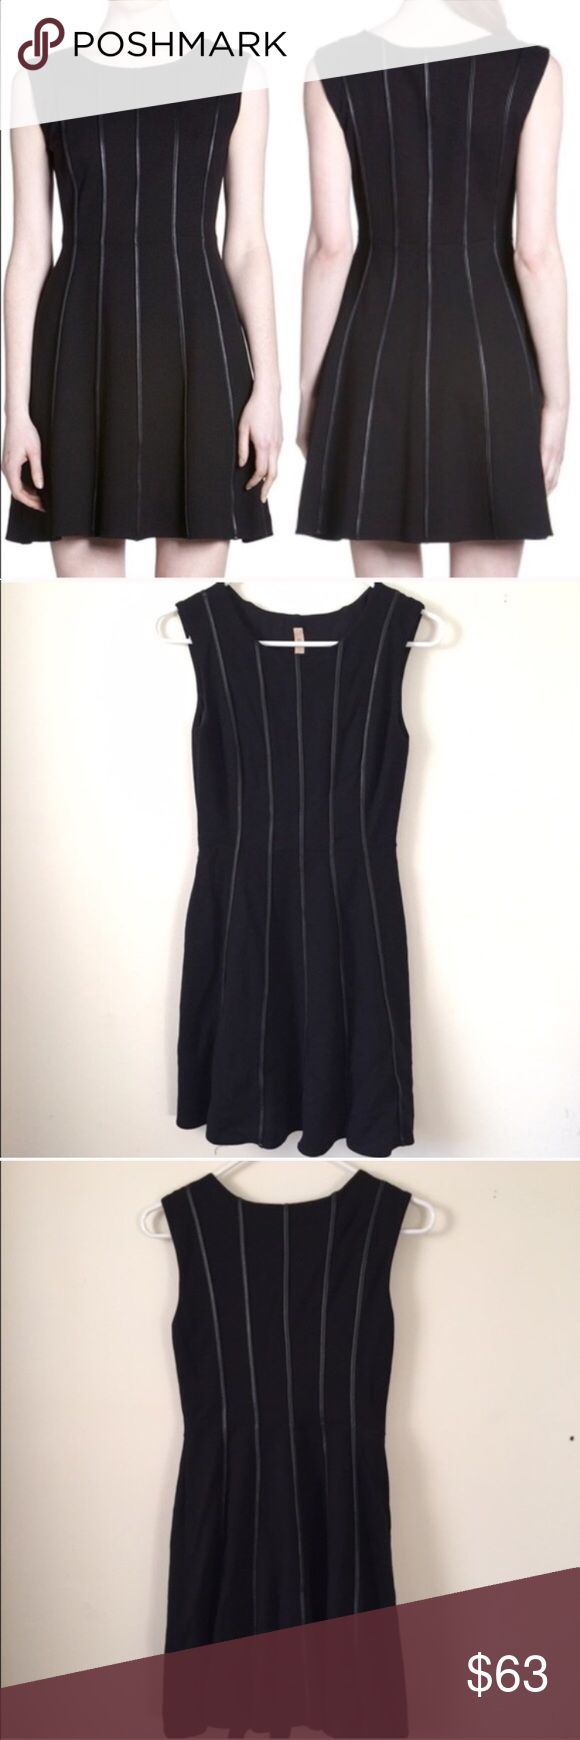 Bailey 44 Deep Web Black Dress XS The Bailey 44 Deep Web Leather Piping Dress is a little black dress with attitude! This sleeveless dress features a fit and flare silhouette. Lined. Fabric: 61% rayon, 35% nylon, 4% spandex. Excellent condition! Bailey 44 Dresses Mini